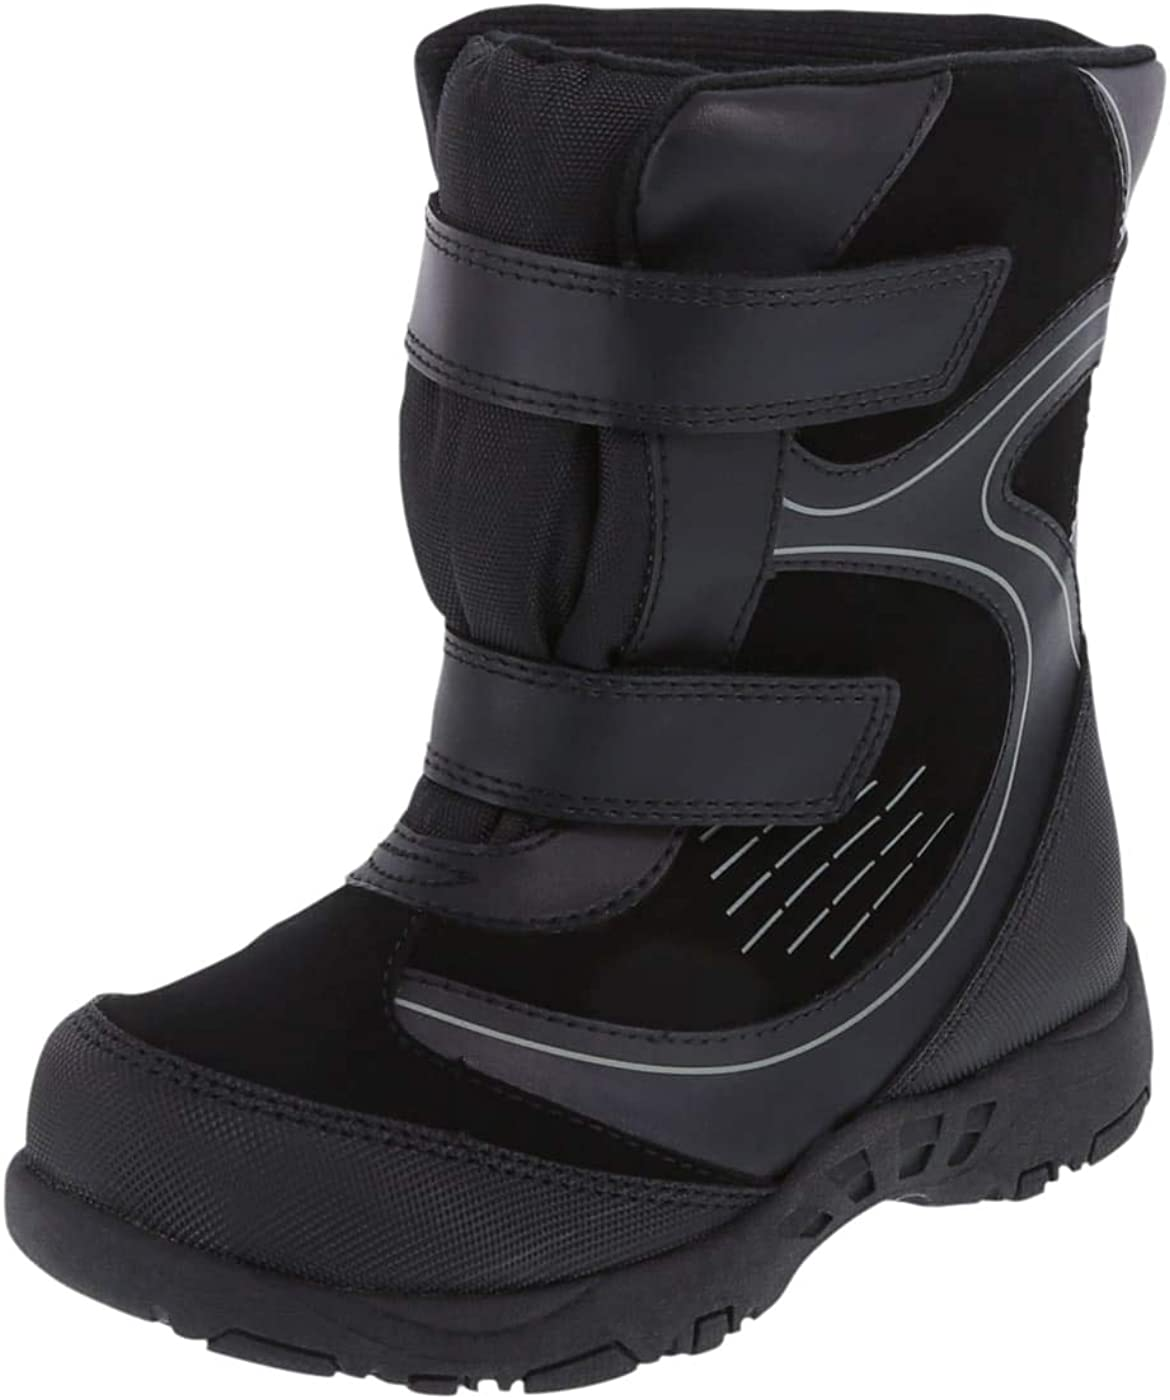 30 Snowboard Boots Rugged Outback Boys Zo